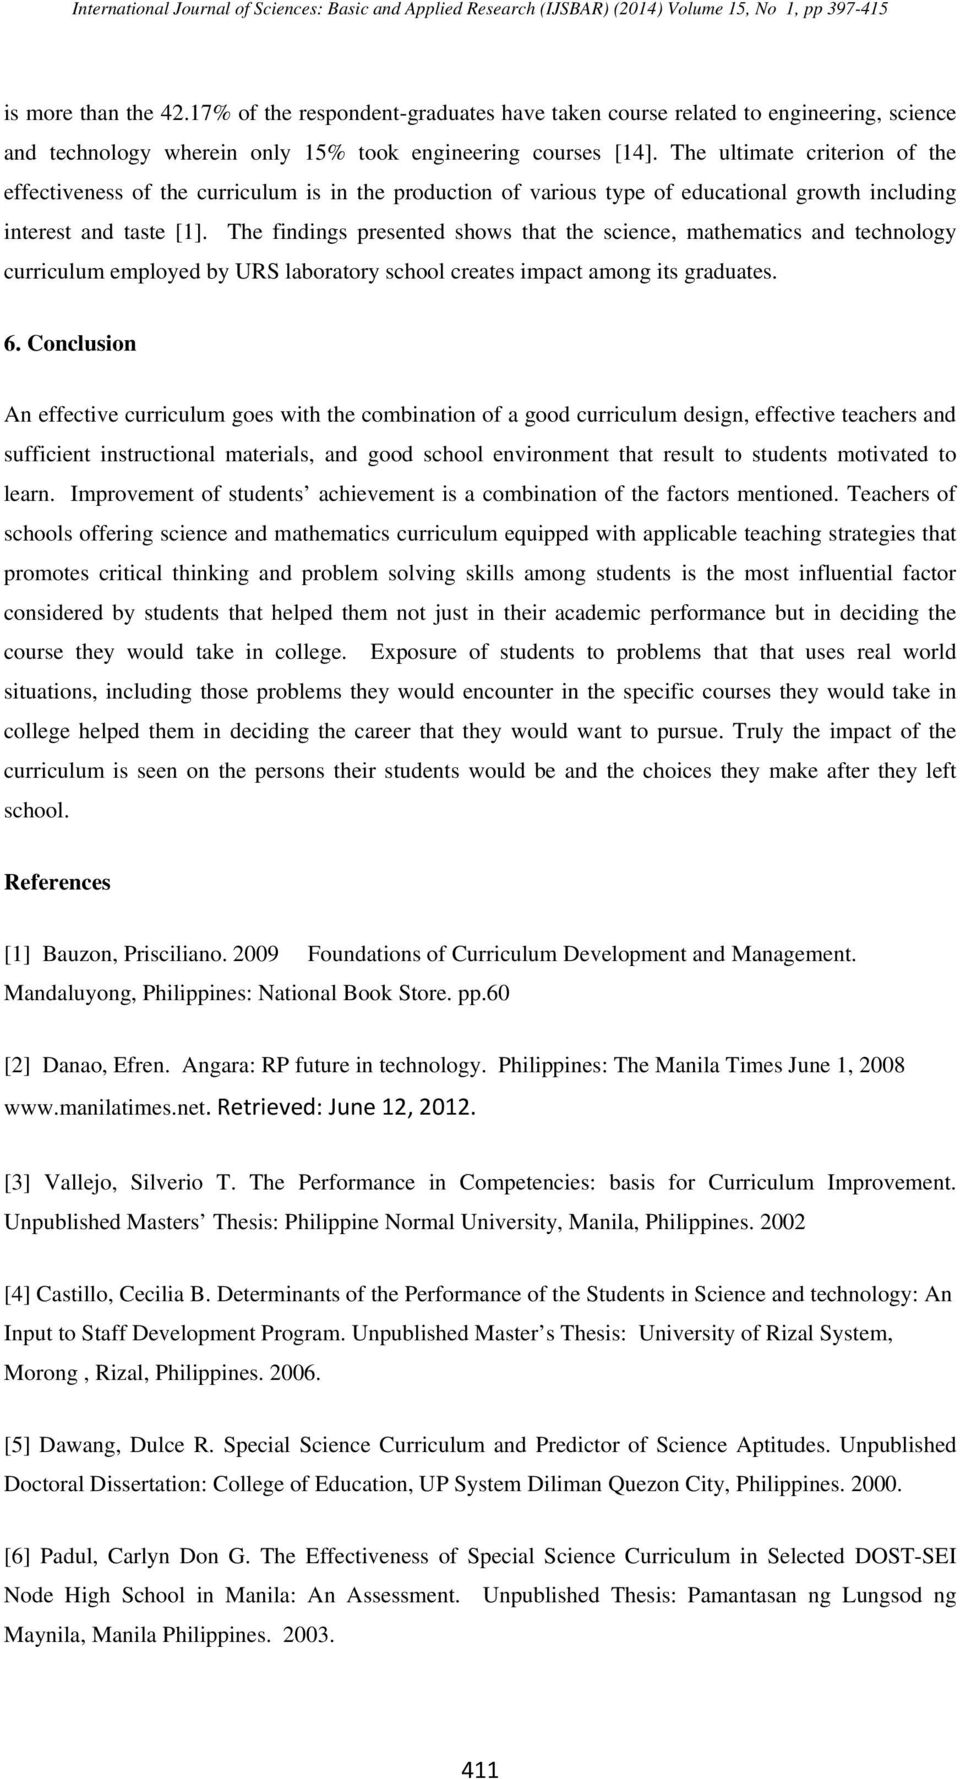 research paper on curriculum development in the philippines